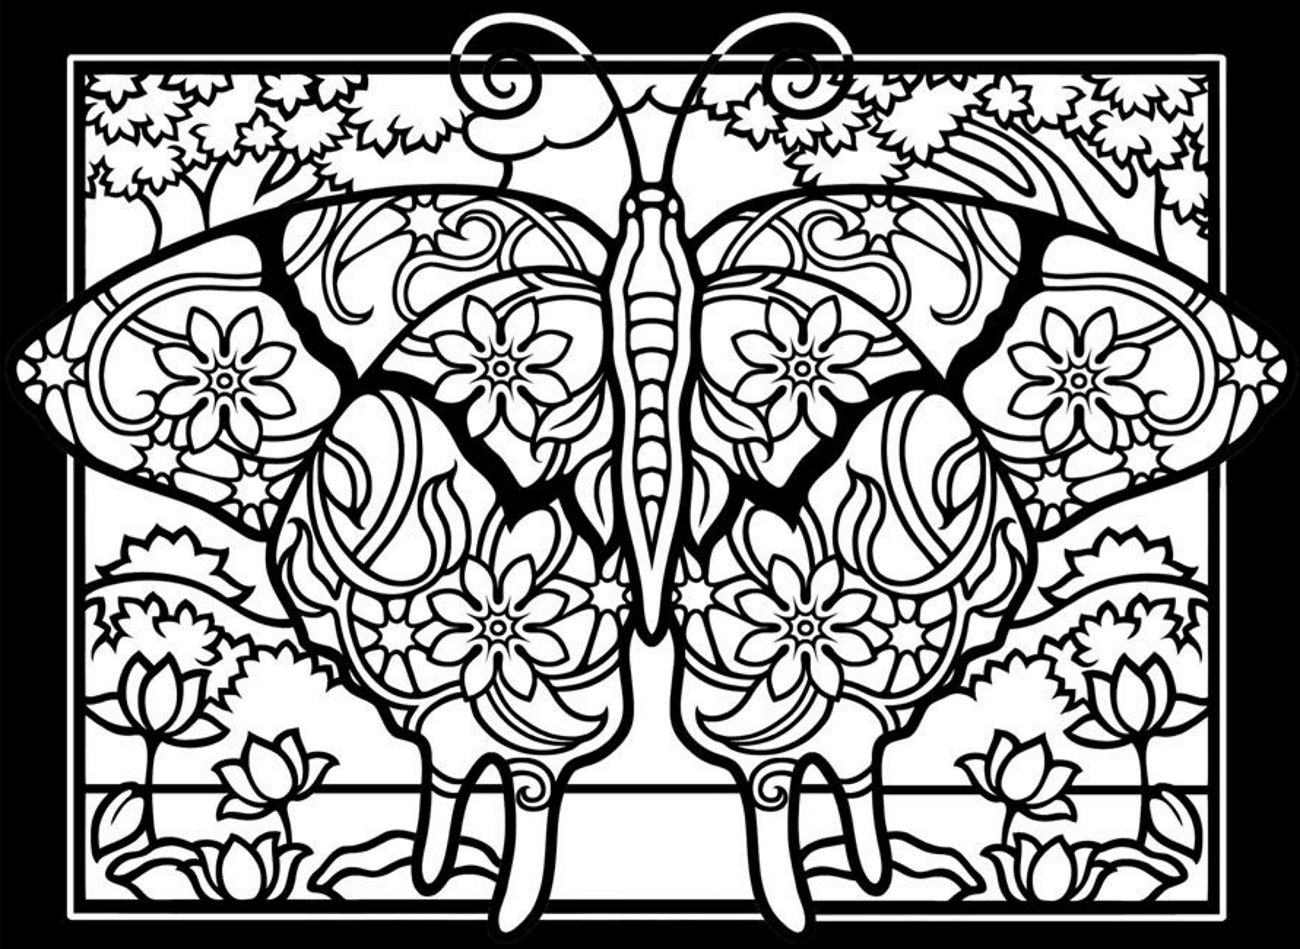 Coloring picture of a beautiful butterfly with black & thick border